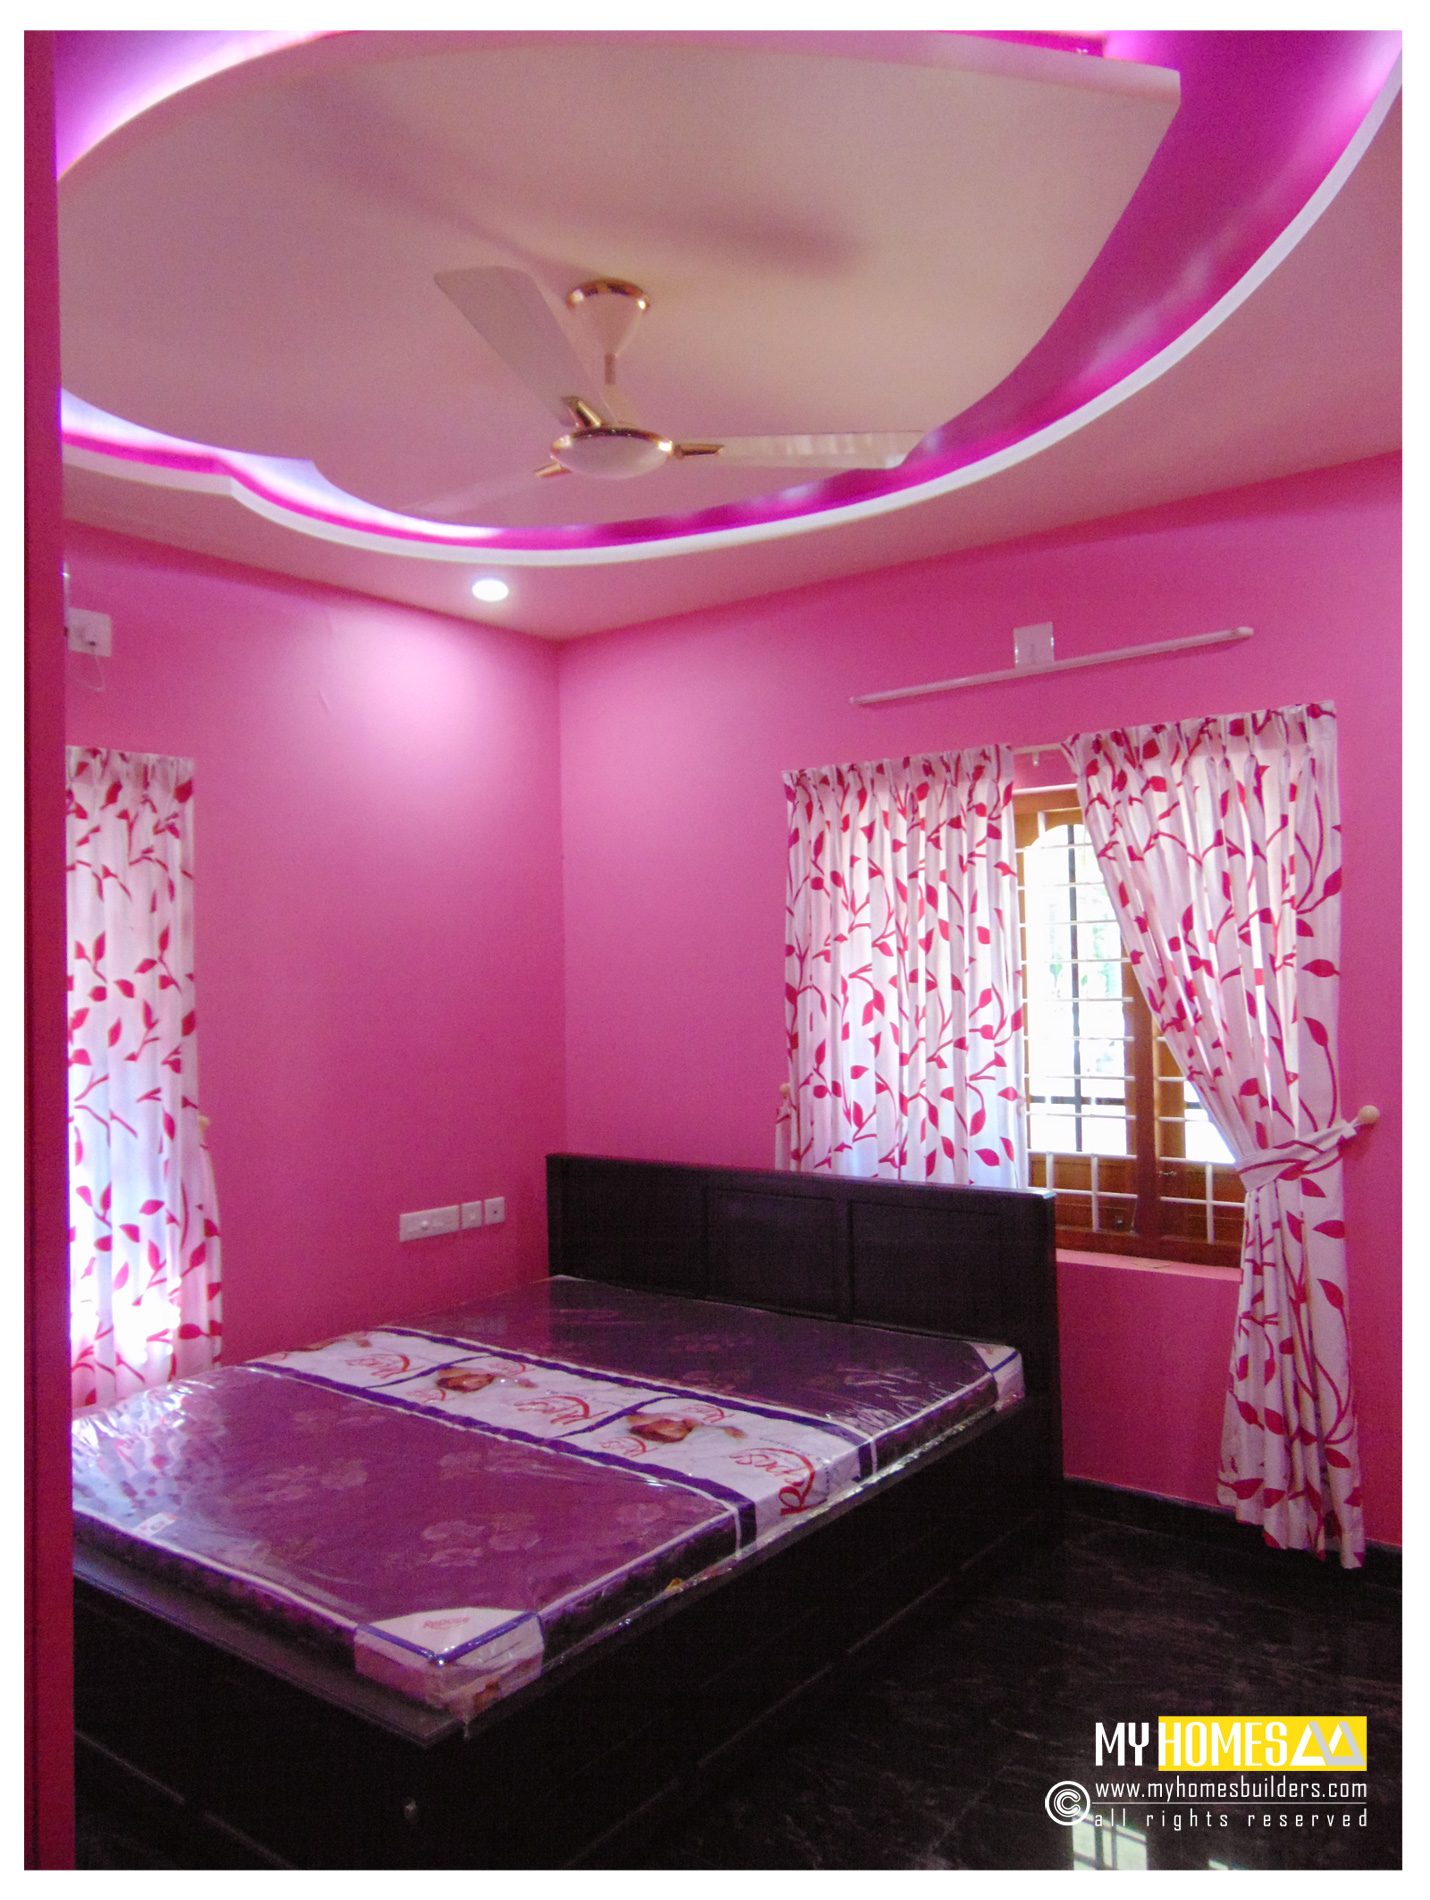 Simple style kerala bedroom designs ideas for home interior for Room design ideas for bedrooms